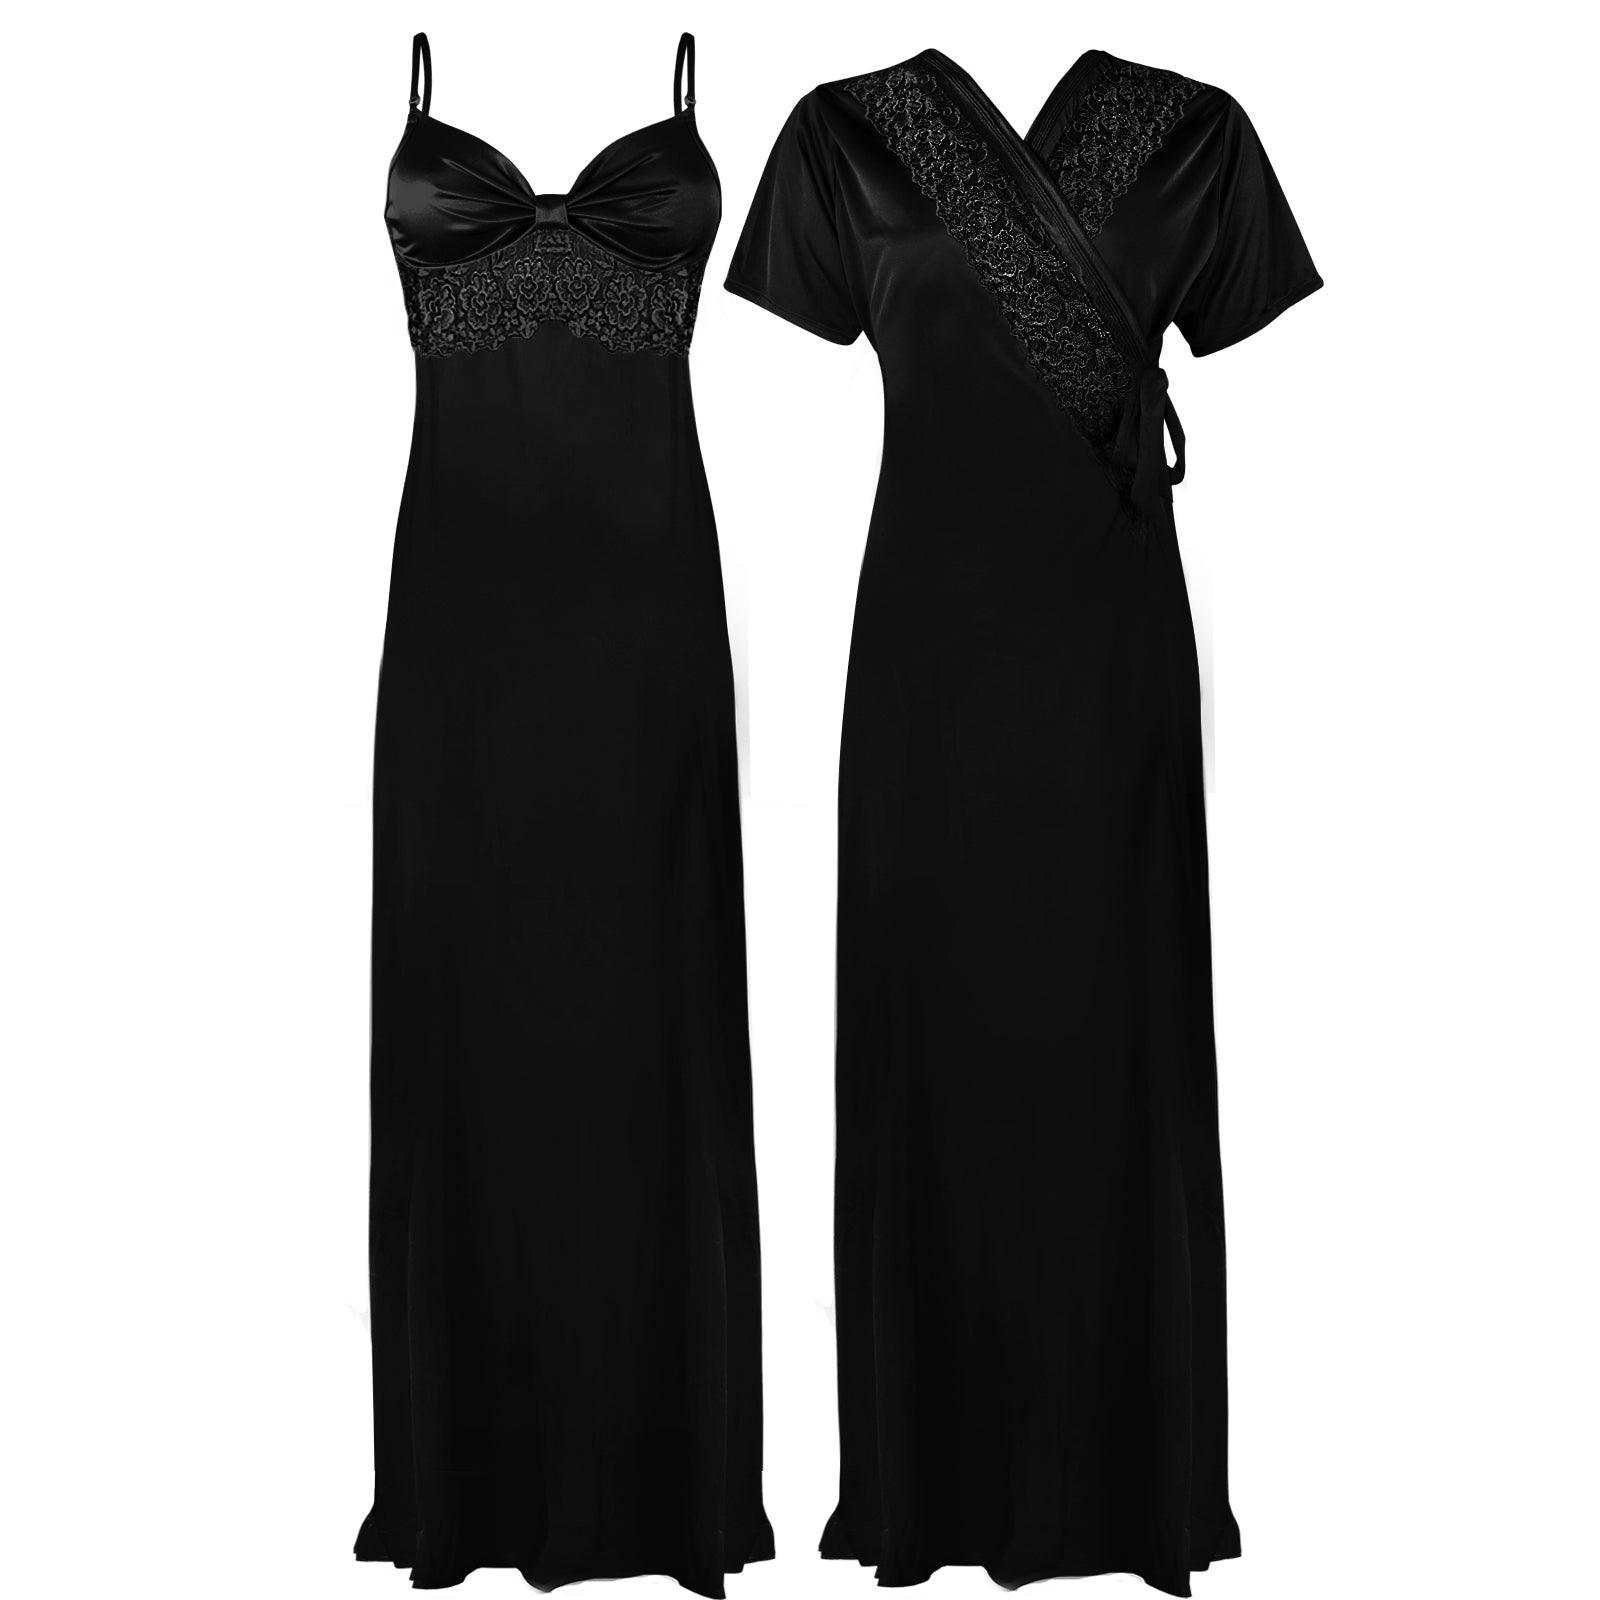 Colour: Black 2 Pcs Strappy Lace Long Nighty With Robe Size: One Size